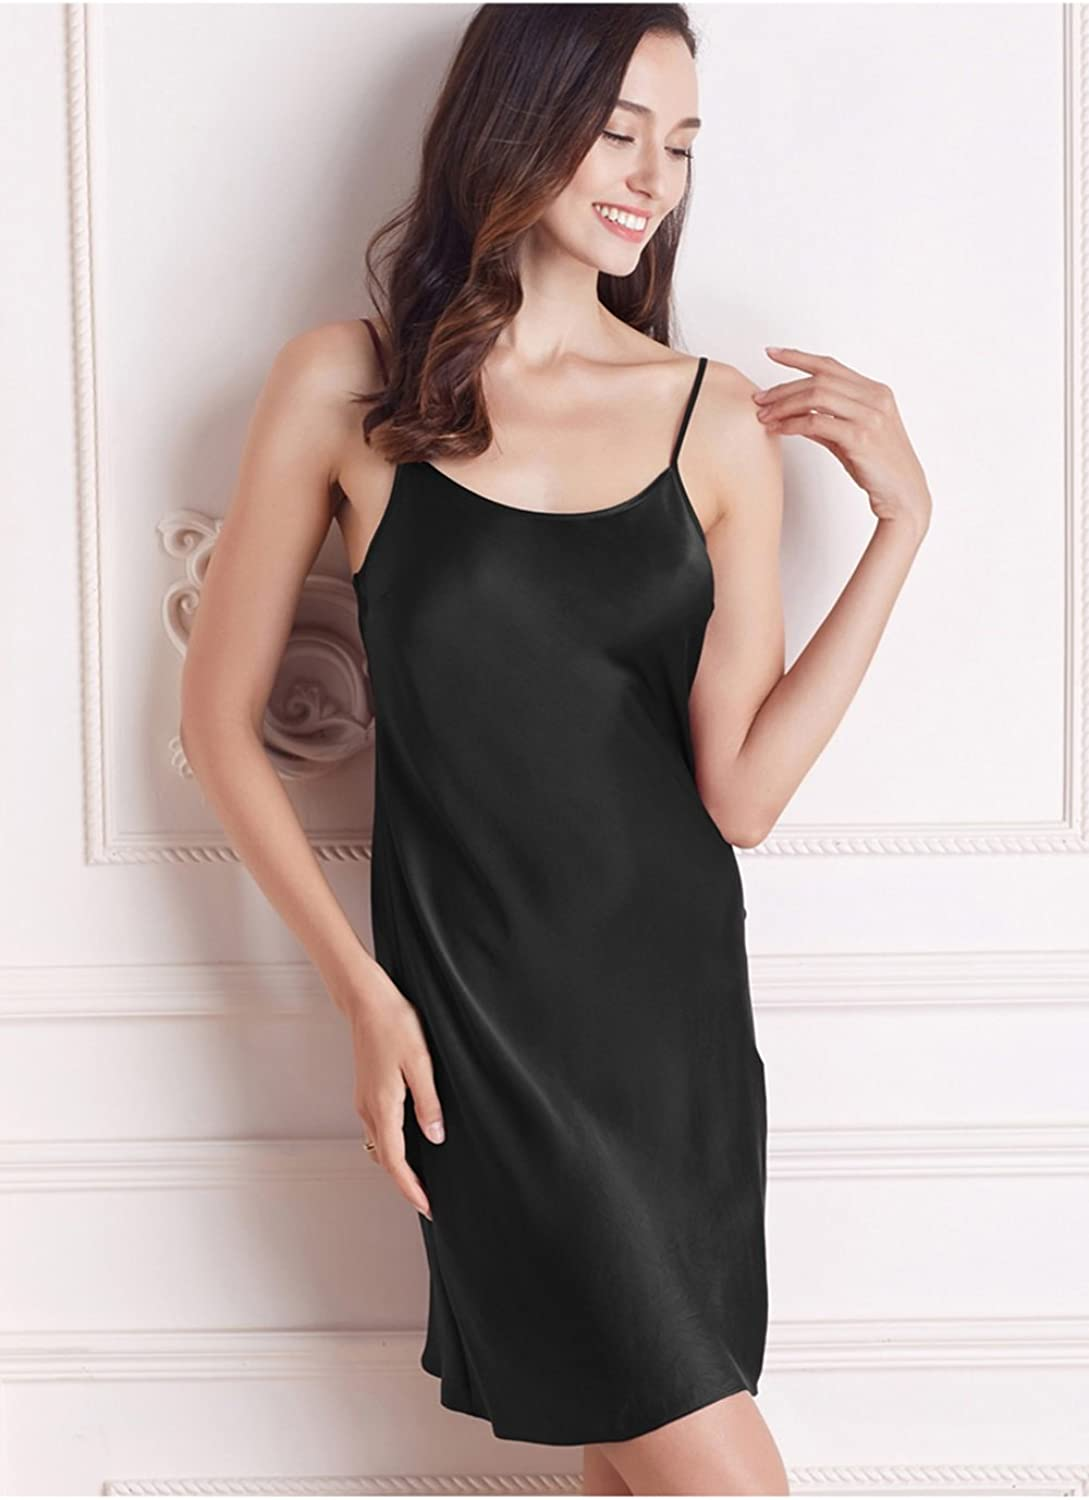 100% Silk Pajamas Women Base Dress Nightwear Sexy Sleepwear Large Size Nightclothes Sling Sleeveless Nightgown (color   C, Size   XXL)